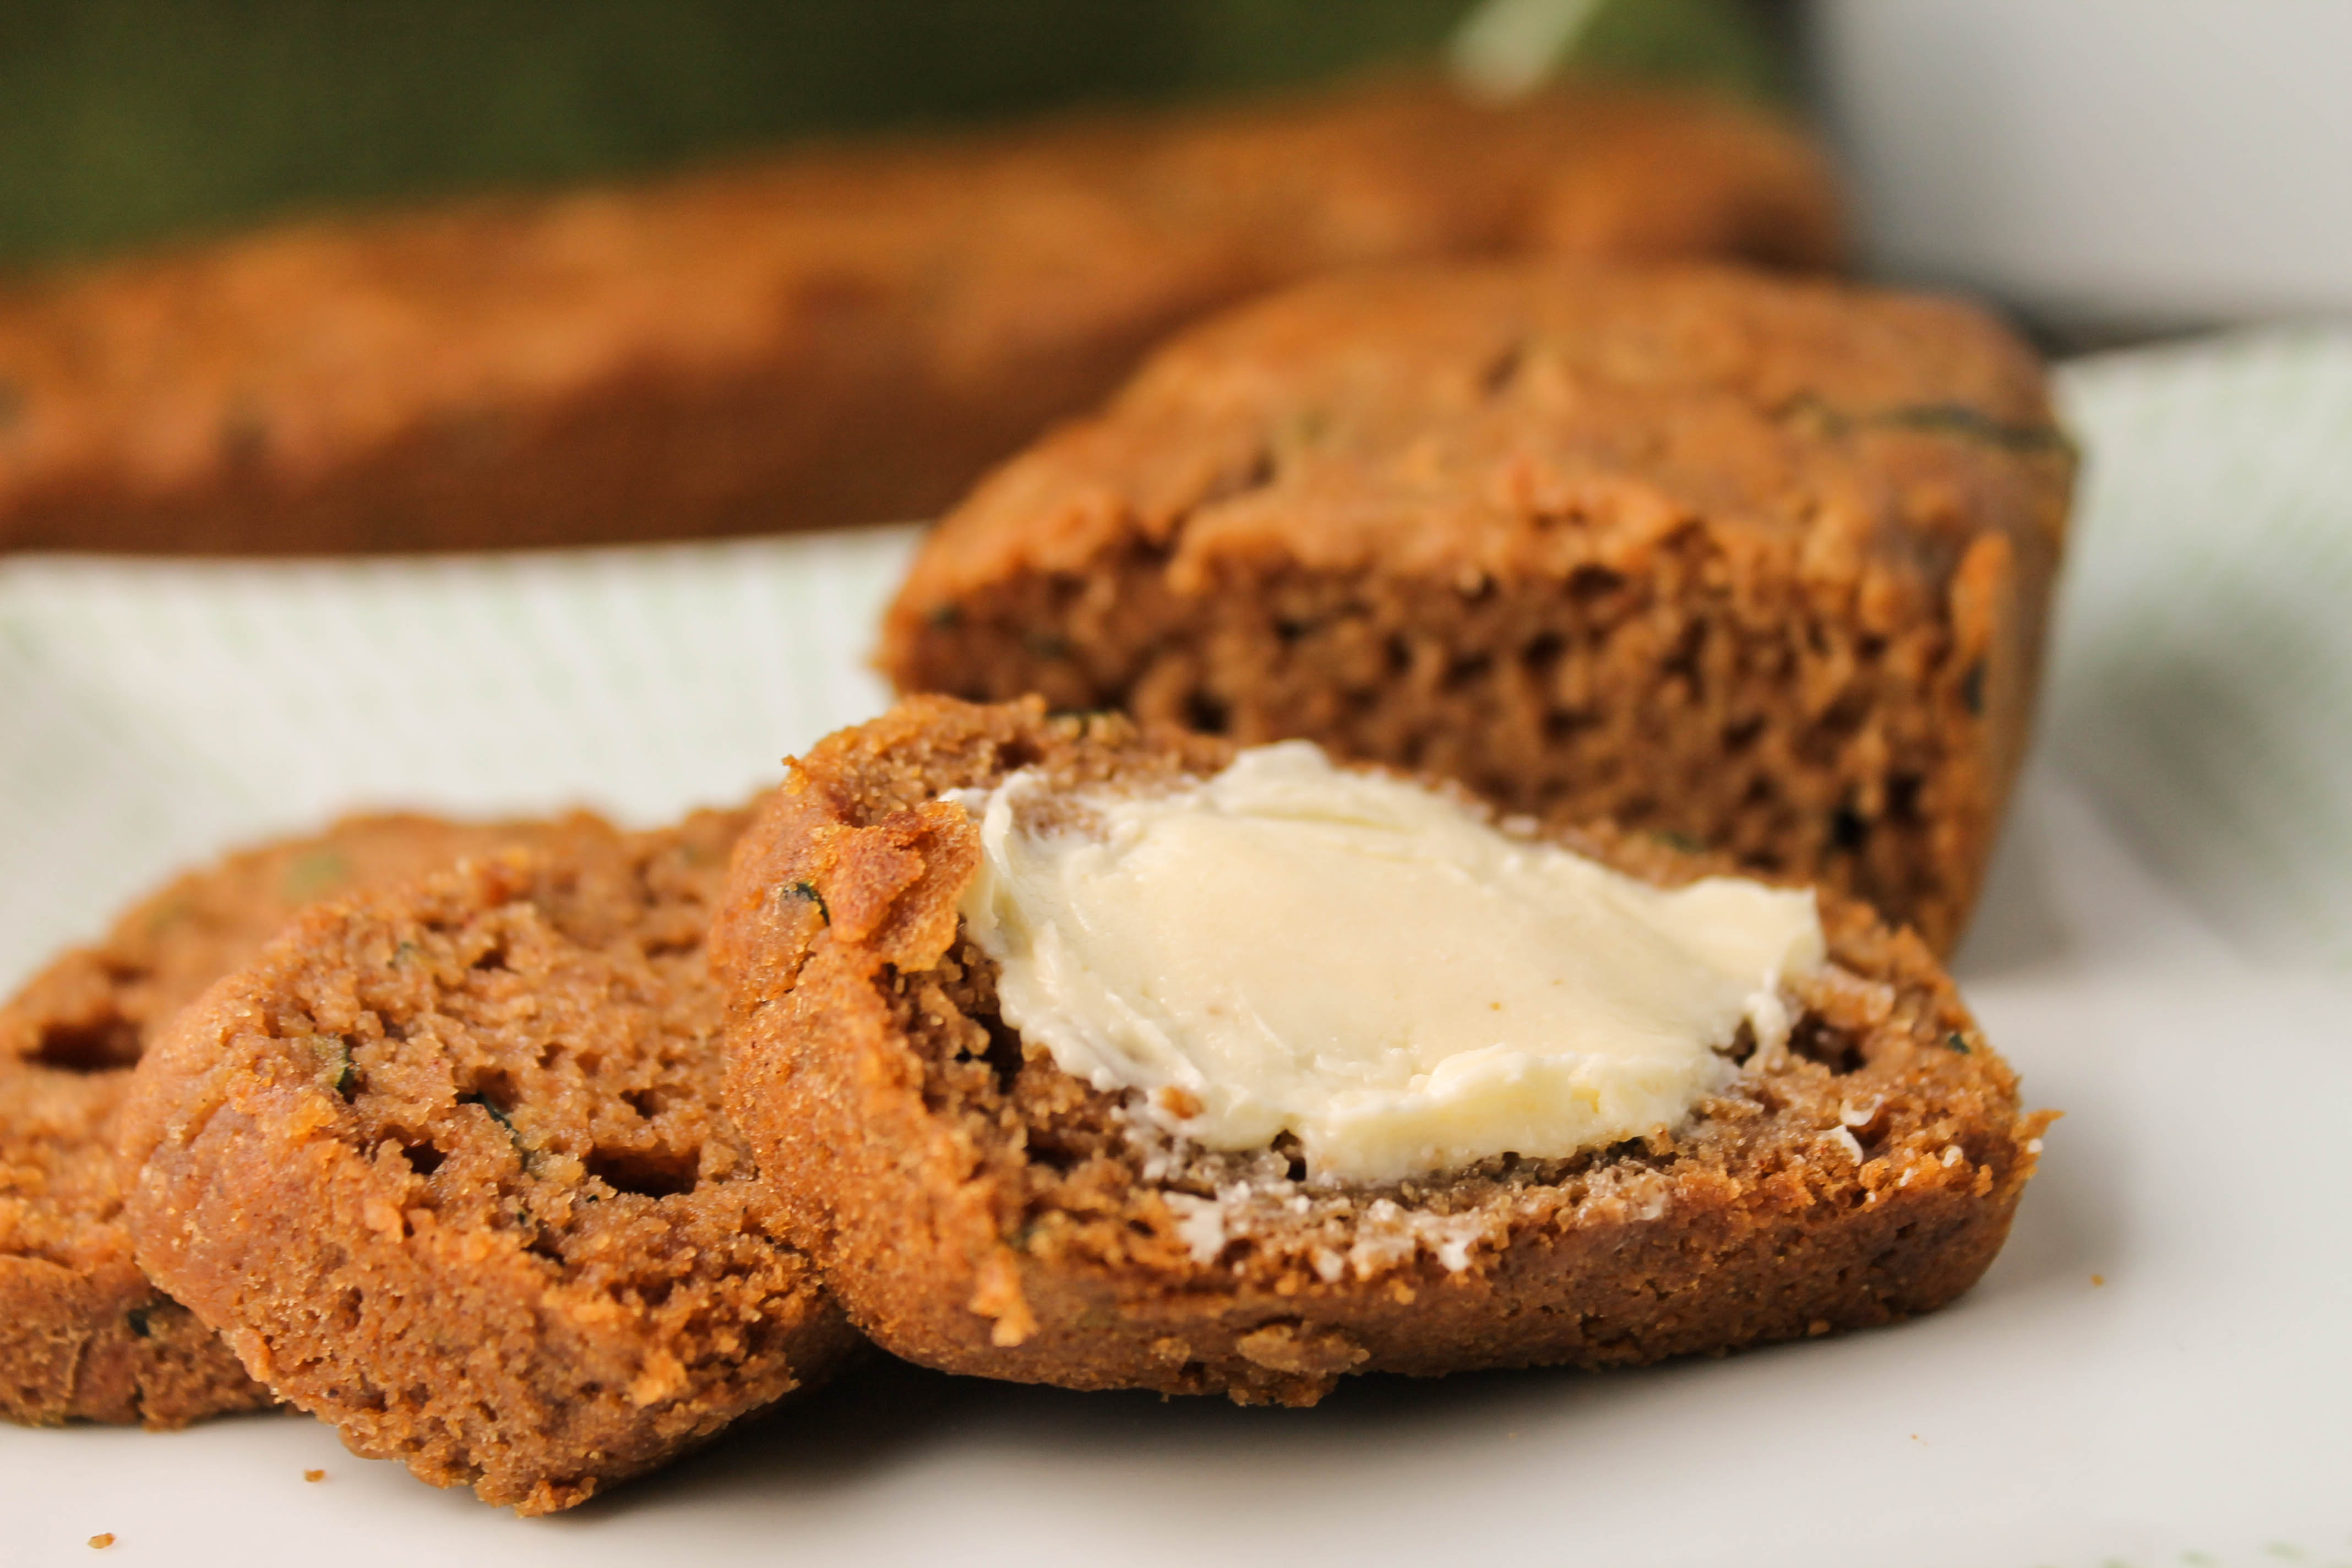 sliced mini loaf of zucchini bread with a slather of butter on one slice